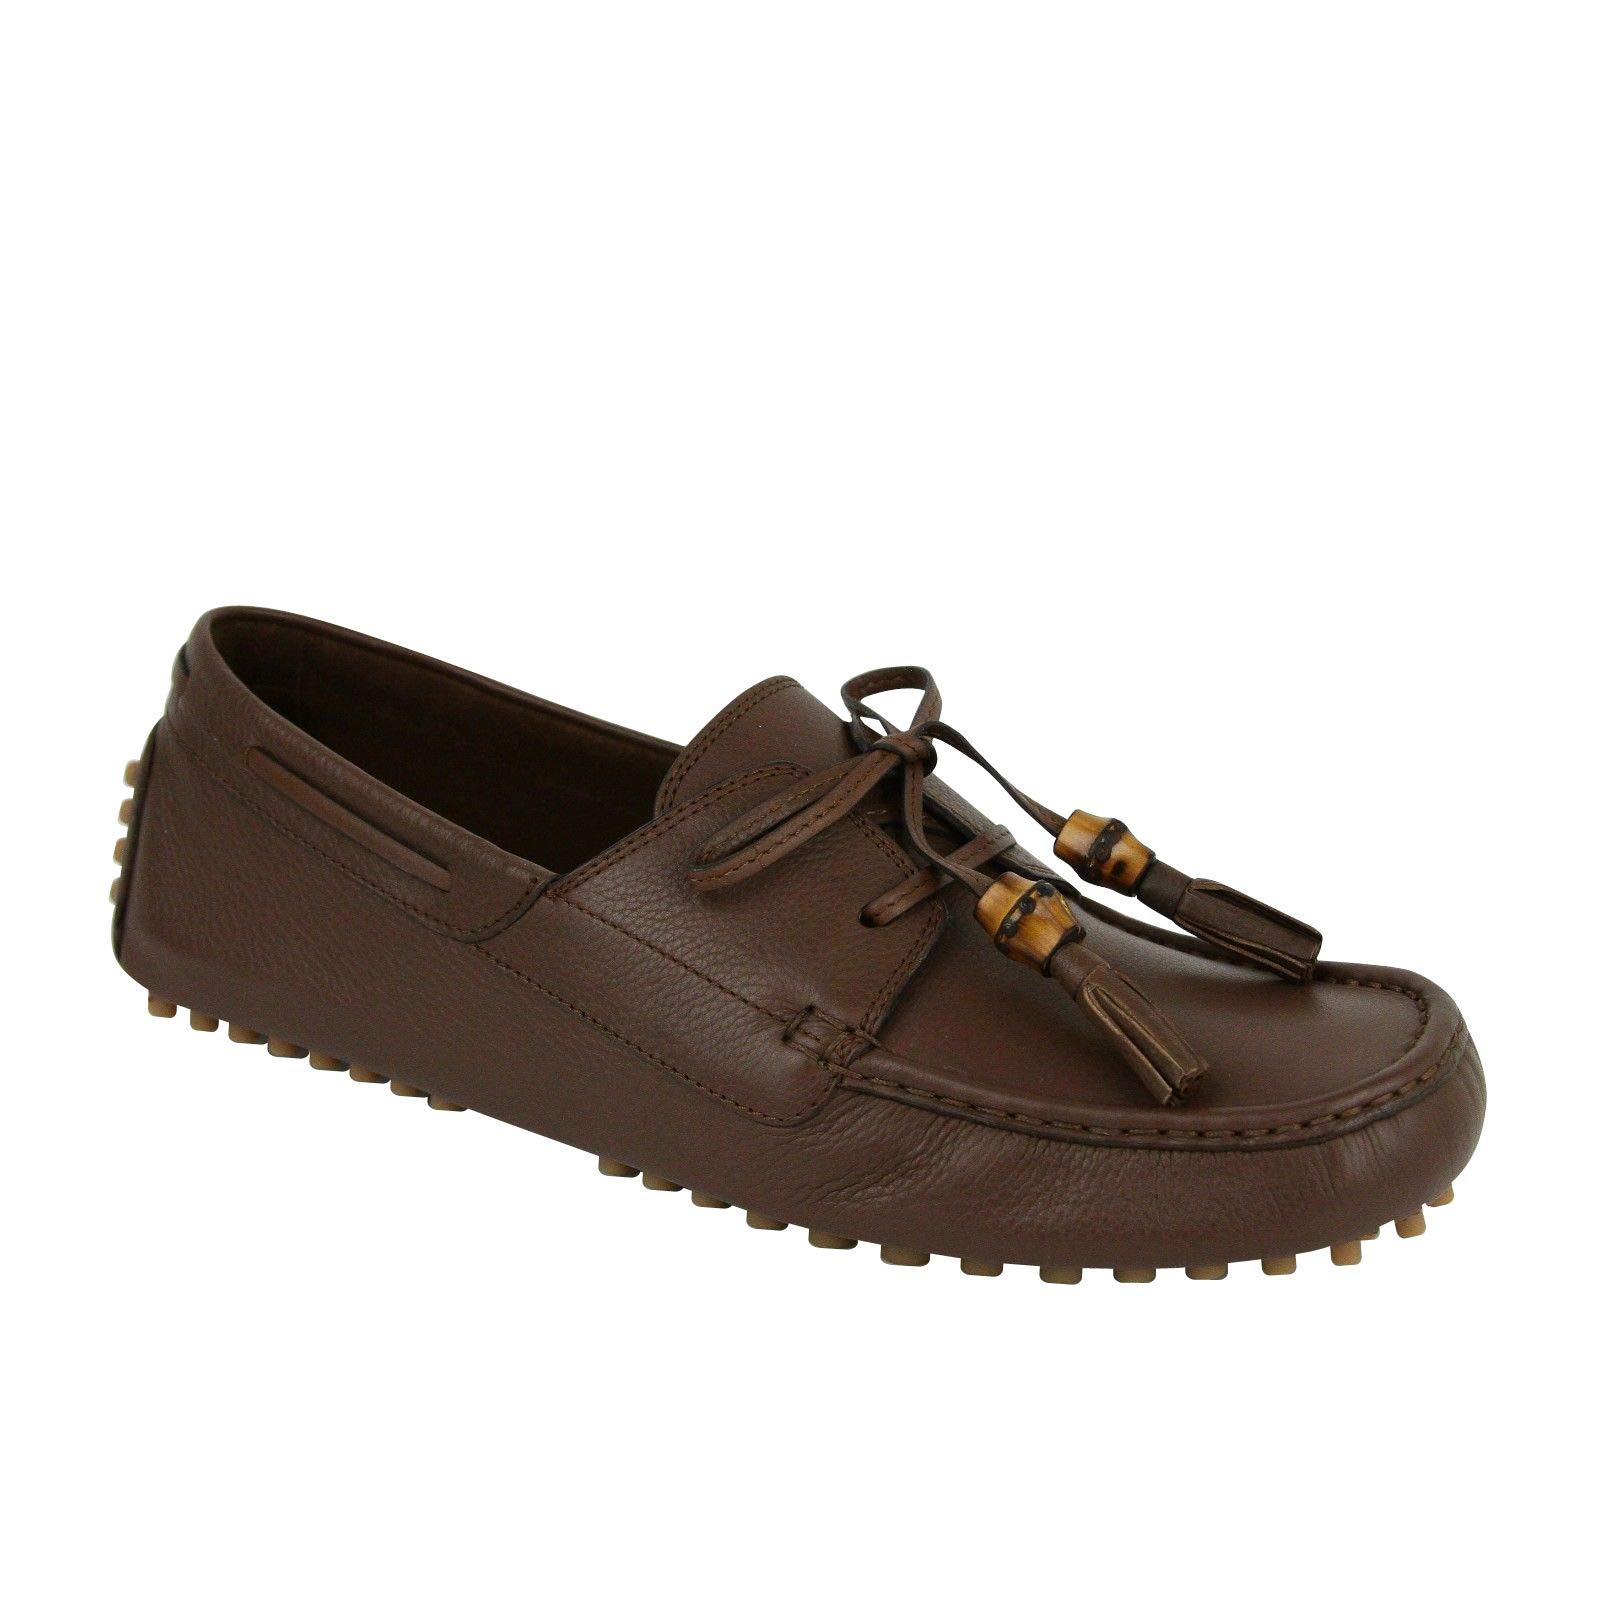 eefd25dee65 Gucci Bamboo Tassel Brown Leather Loafer Driver 367923 2138 (9 G   9.5 US)